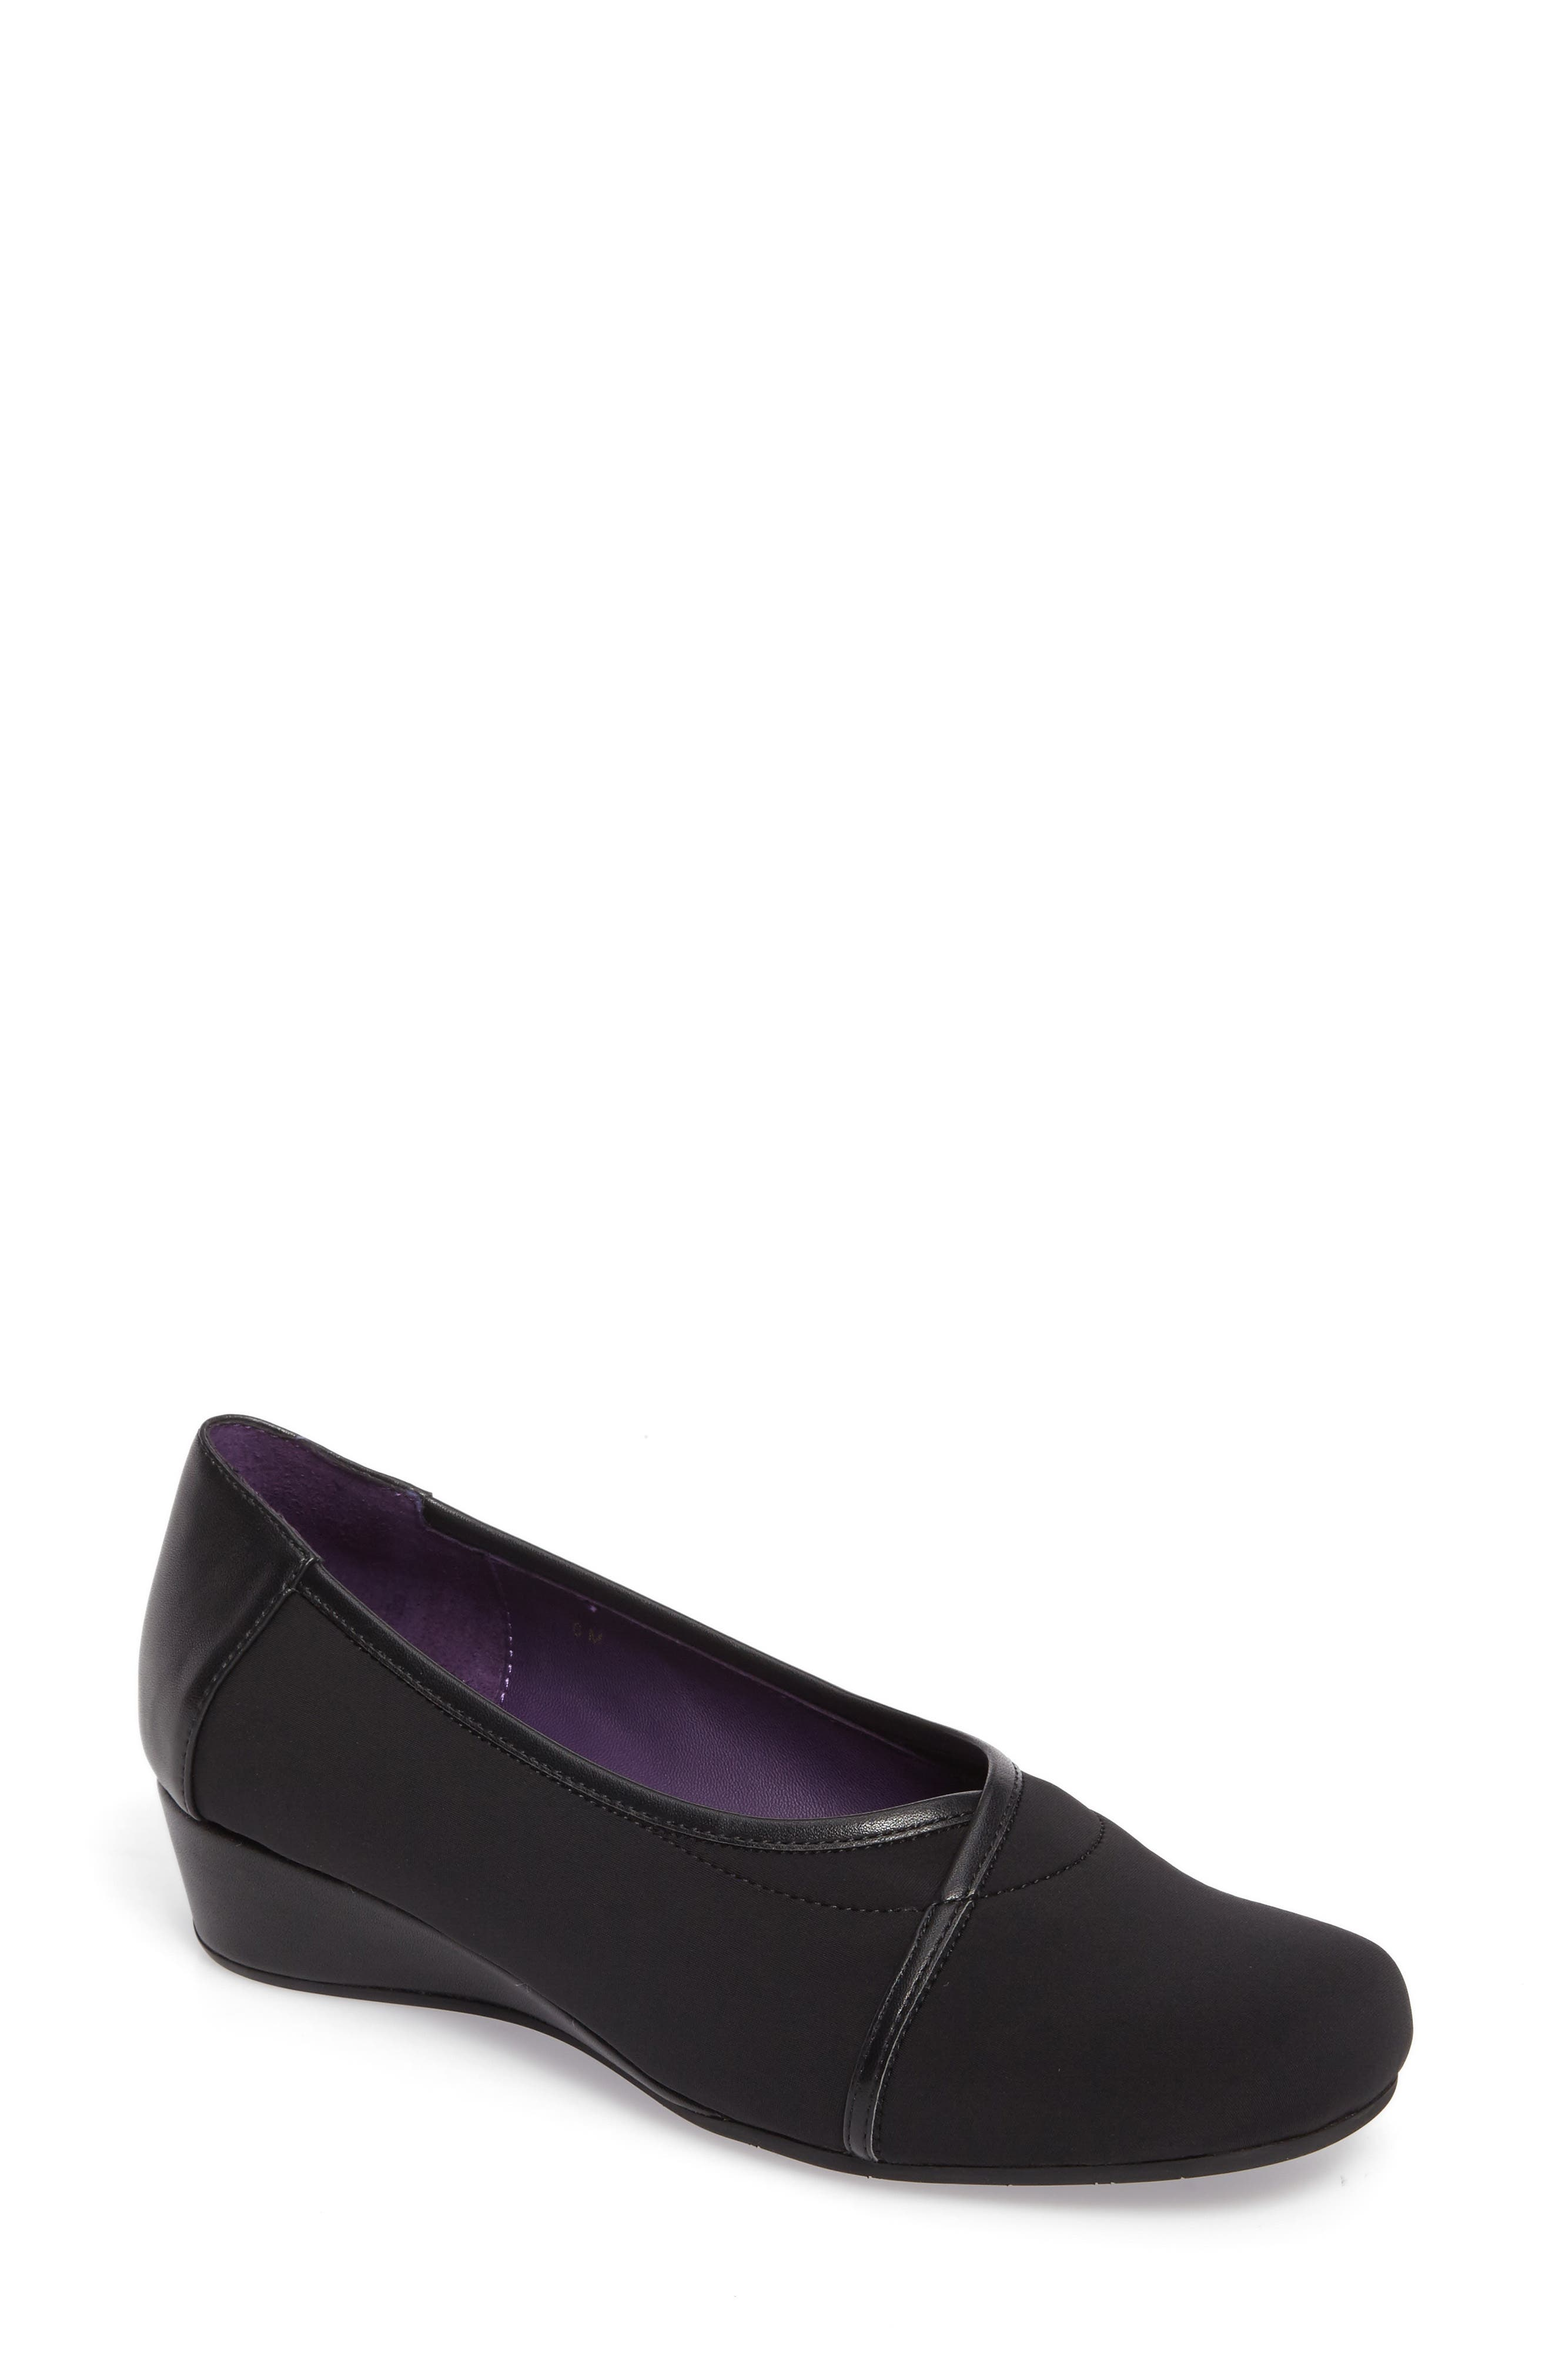 Madlen Wedge,                         Main,                         color, 001